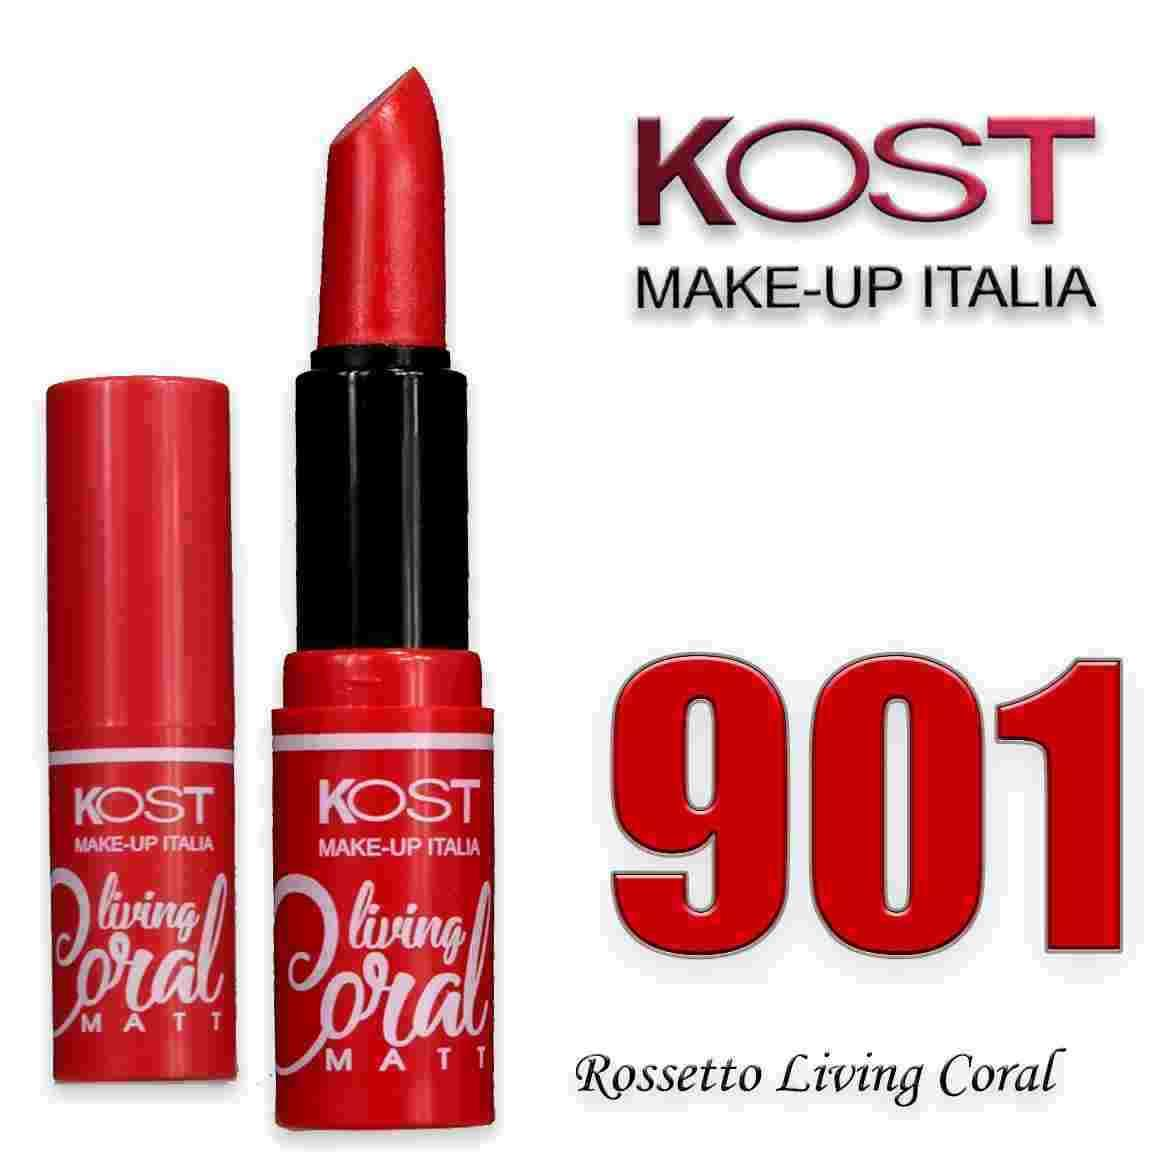 Rossetto living coral kost 901